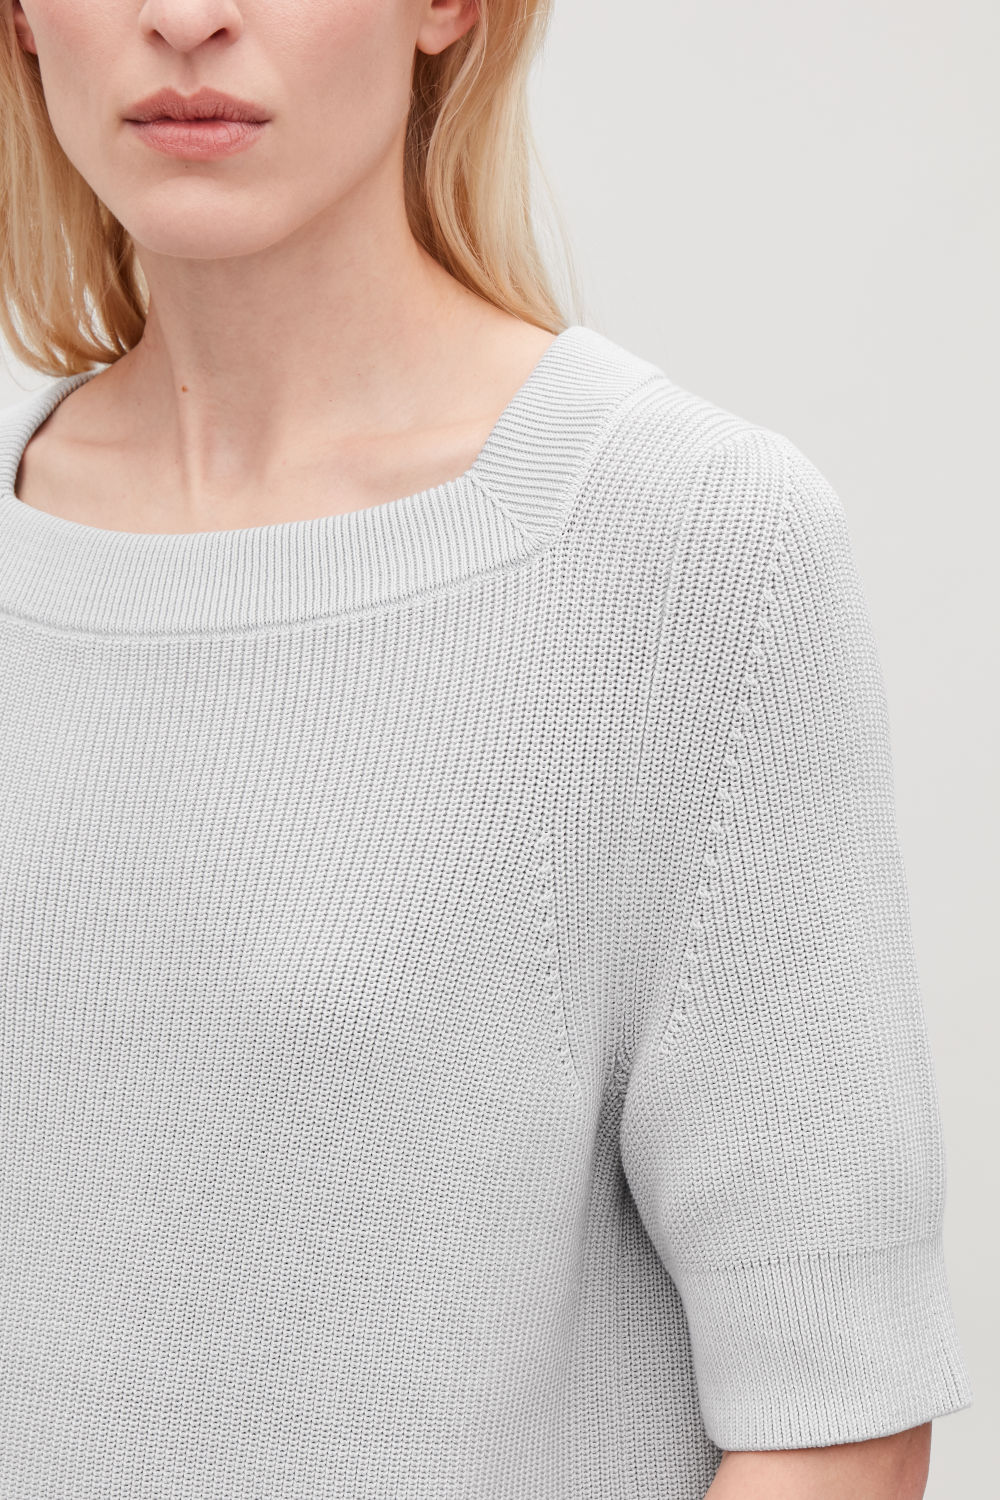 COS SQUARE-NECK RIBBED KNIT TOP,Grey